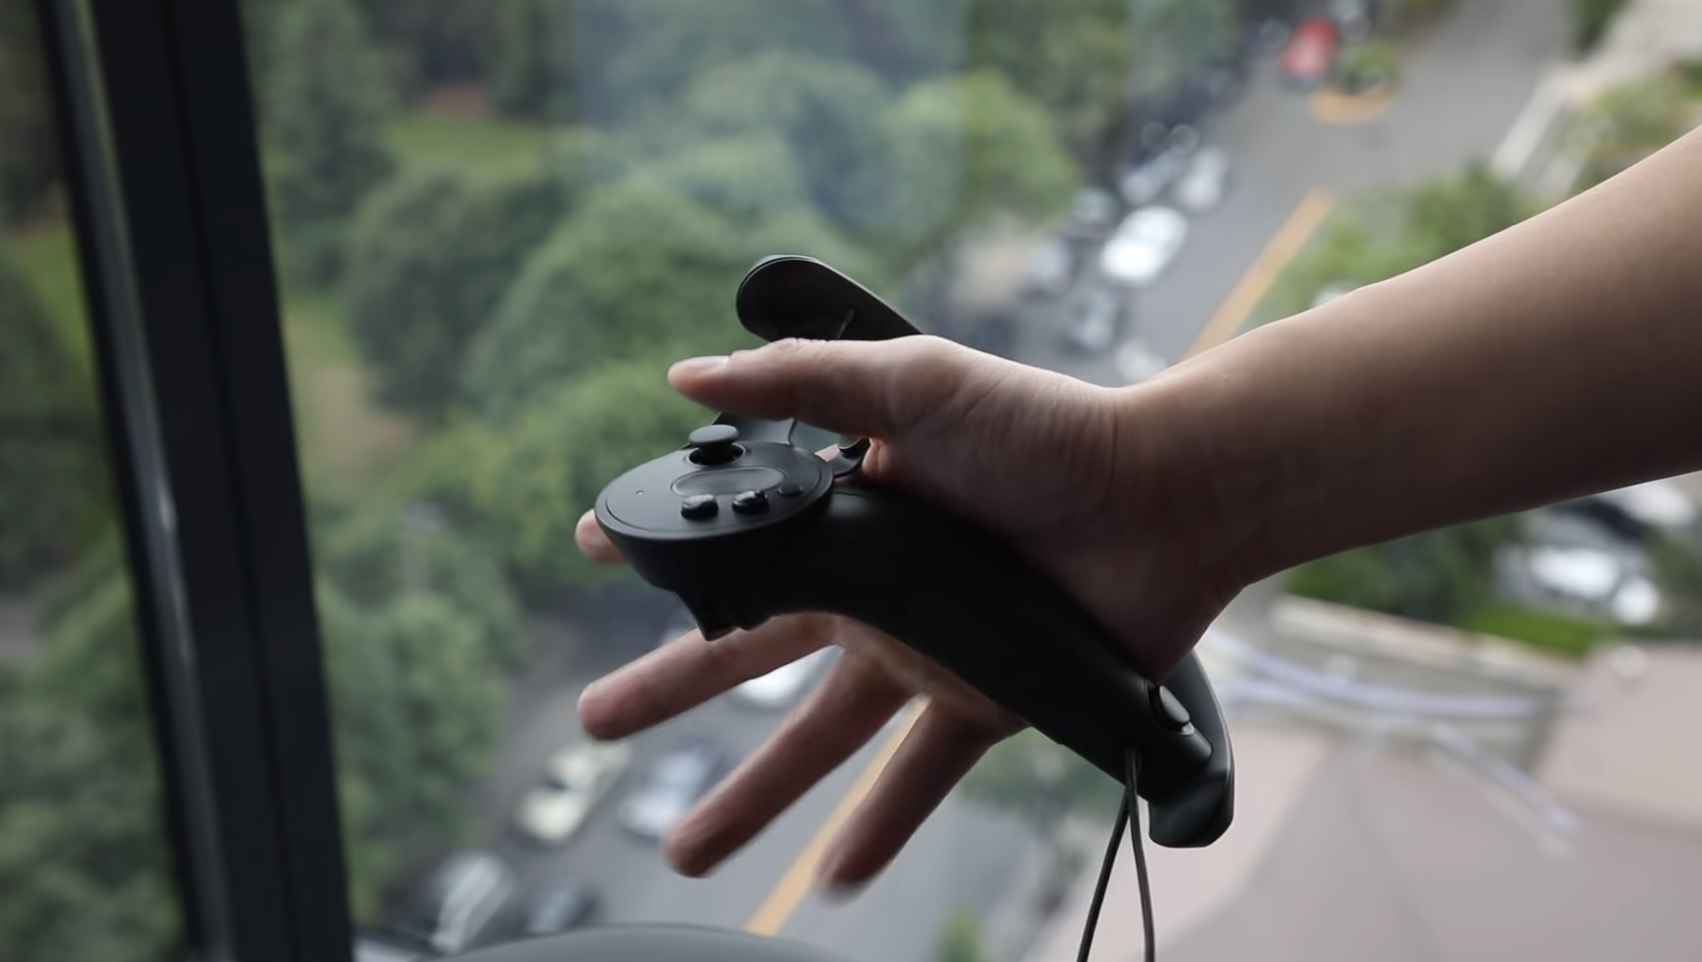 Valve's Knuckles EV2 controller will let you squeeze things in VR | DeviceDaily.com